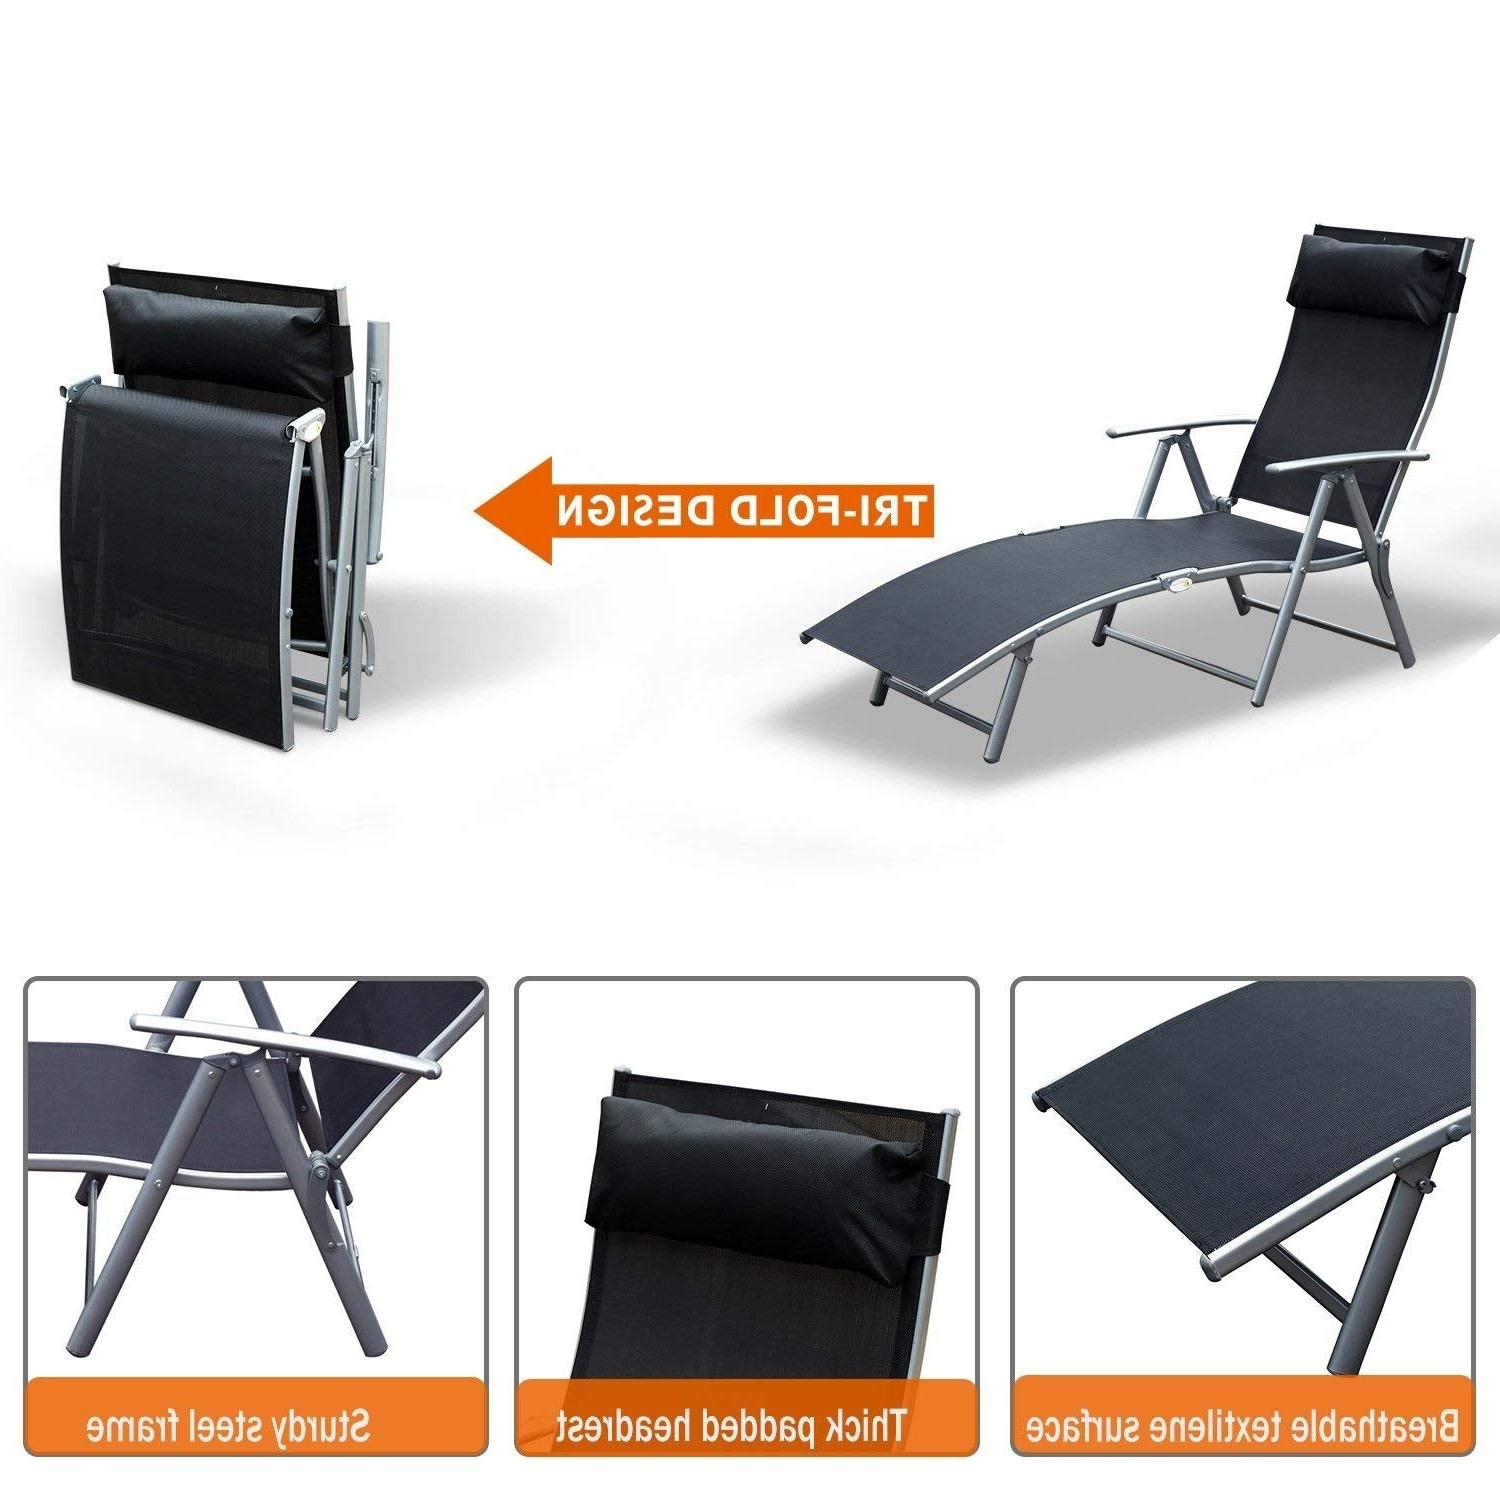 Steel Sling Fabric Outdoor Folding Chaise Lounges Intended For Well Liked Outsunny Steel Sling Fabric Outdoor Folding Chaise Lounge Chair Recliner –  Black (View 18 of 25)